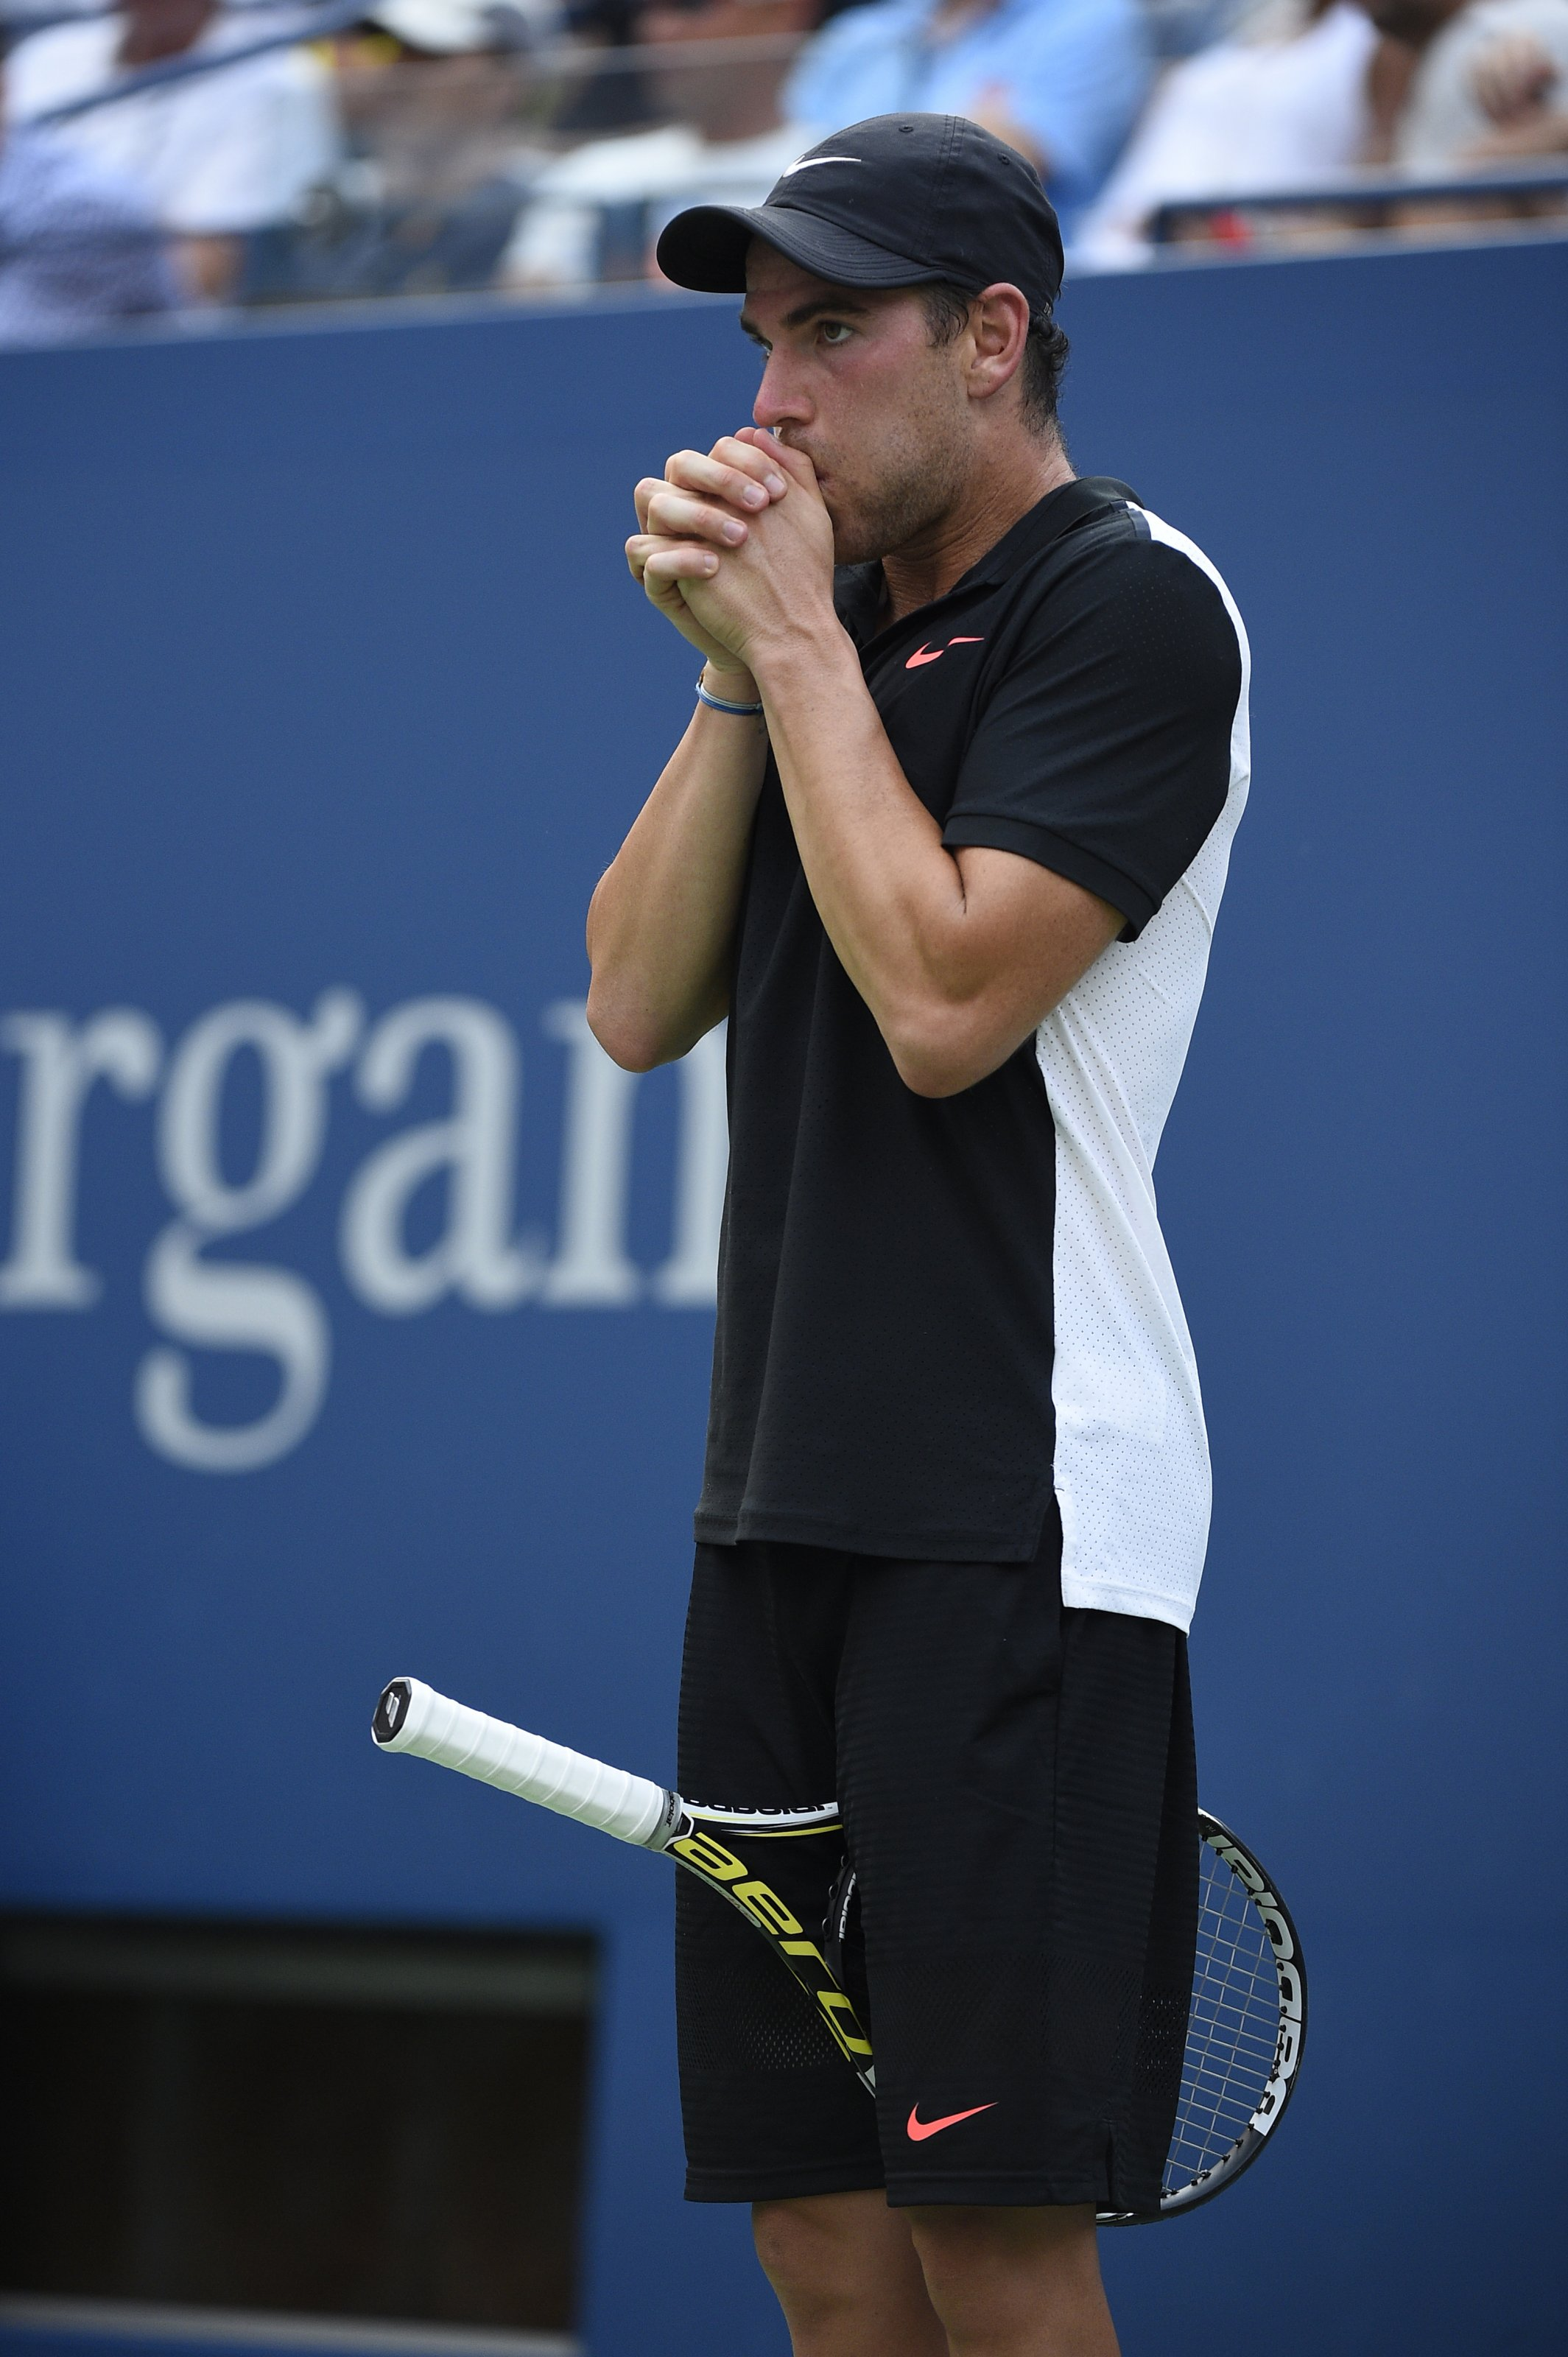 Adrian Mannarino of France plays his second round match at the US Open at the USTA Billie Jean King National Tennis Center in the Flushing neighborhood of the Queens borough of New York City, NY, USA on September 3, 2015. Photo by Corinne Dubreuil/ABACAPRESS.COM